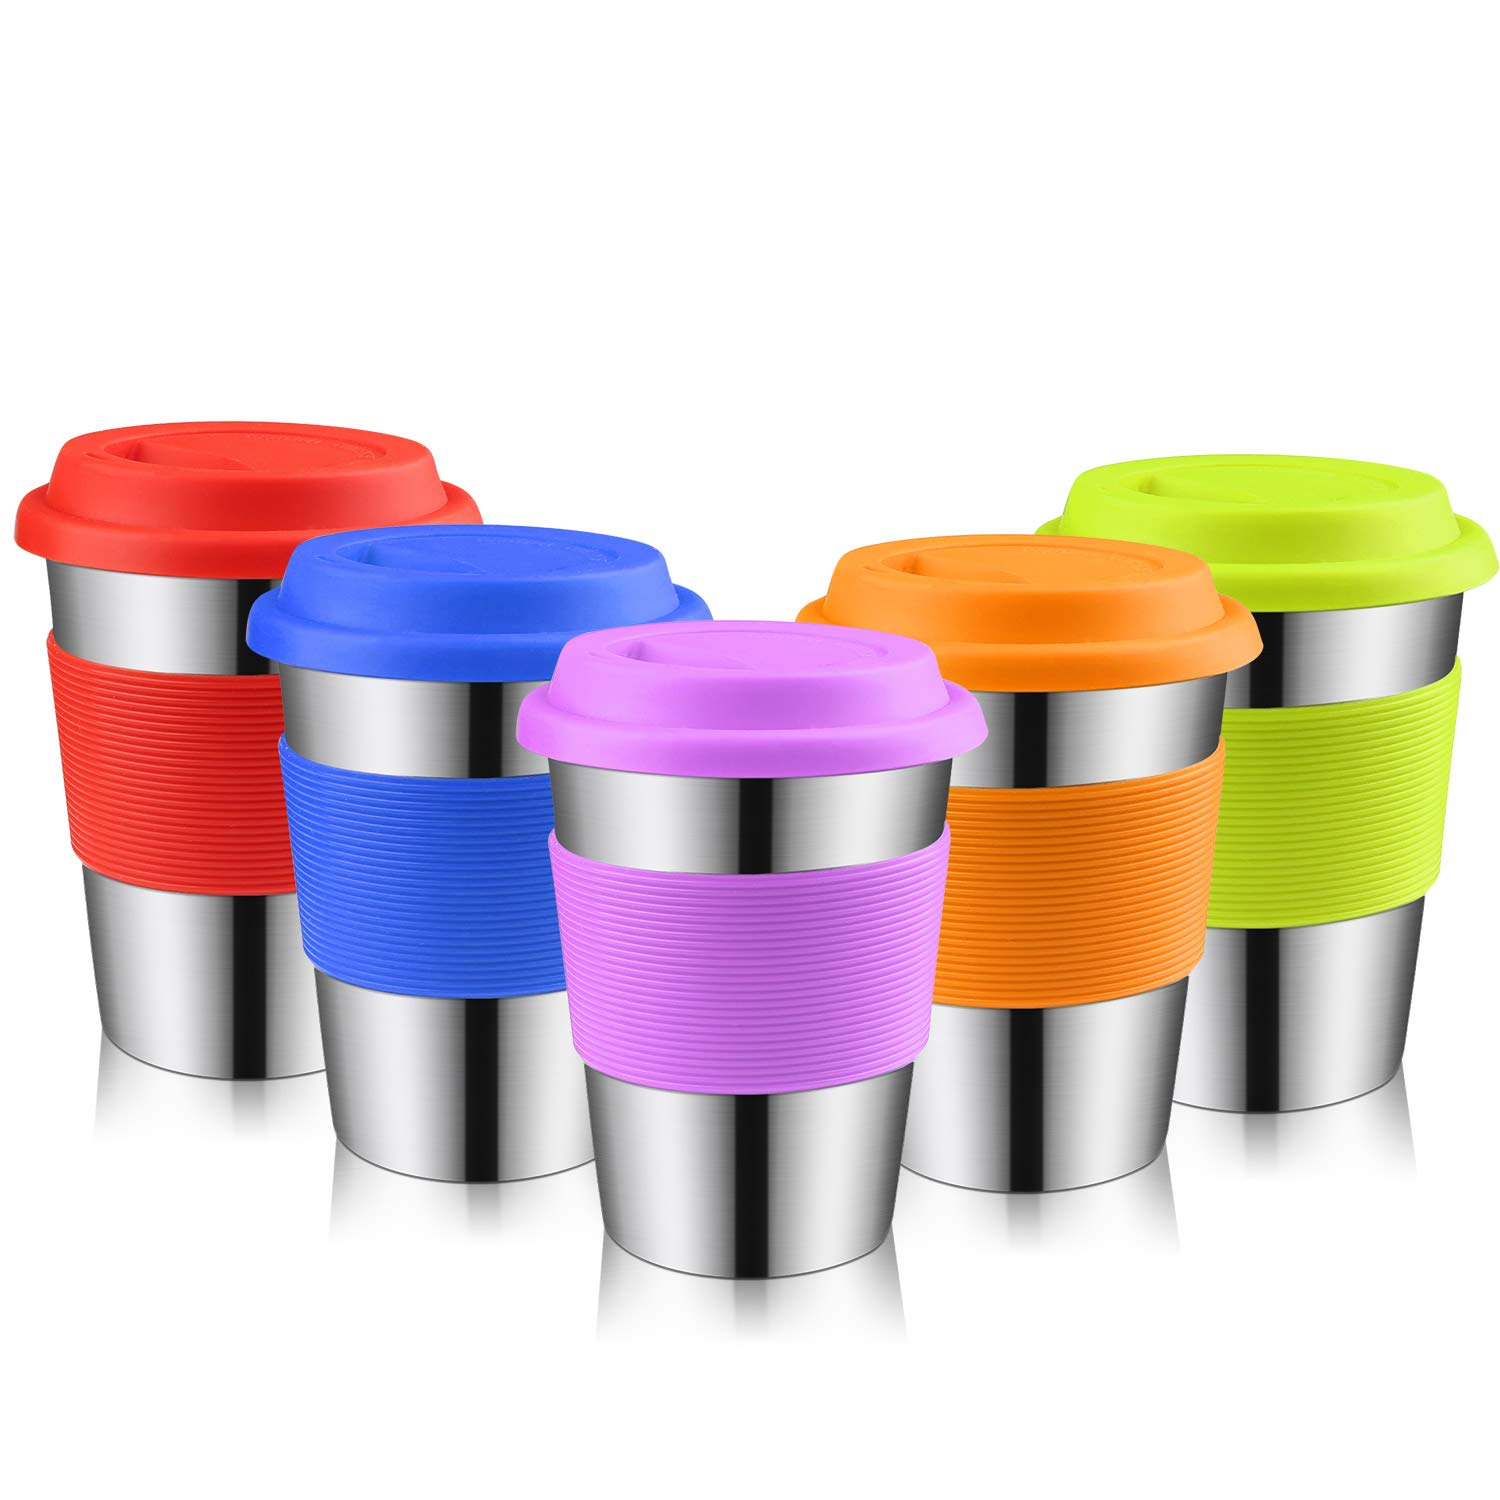 Auranso Food-Grade Stainless Steel Cup, 350ml 12oz Kids Tumbler with Sleeves & Lids BPA-Free Lead-Free Stackable Travel Mug for Child Adult Camping Hiking Indoor & Outdoor Use (5-Pack)